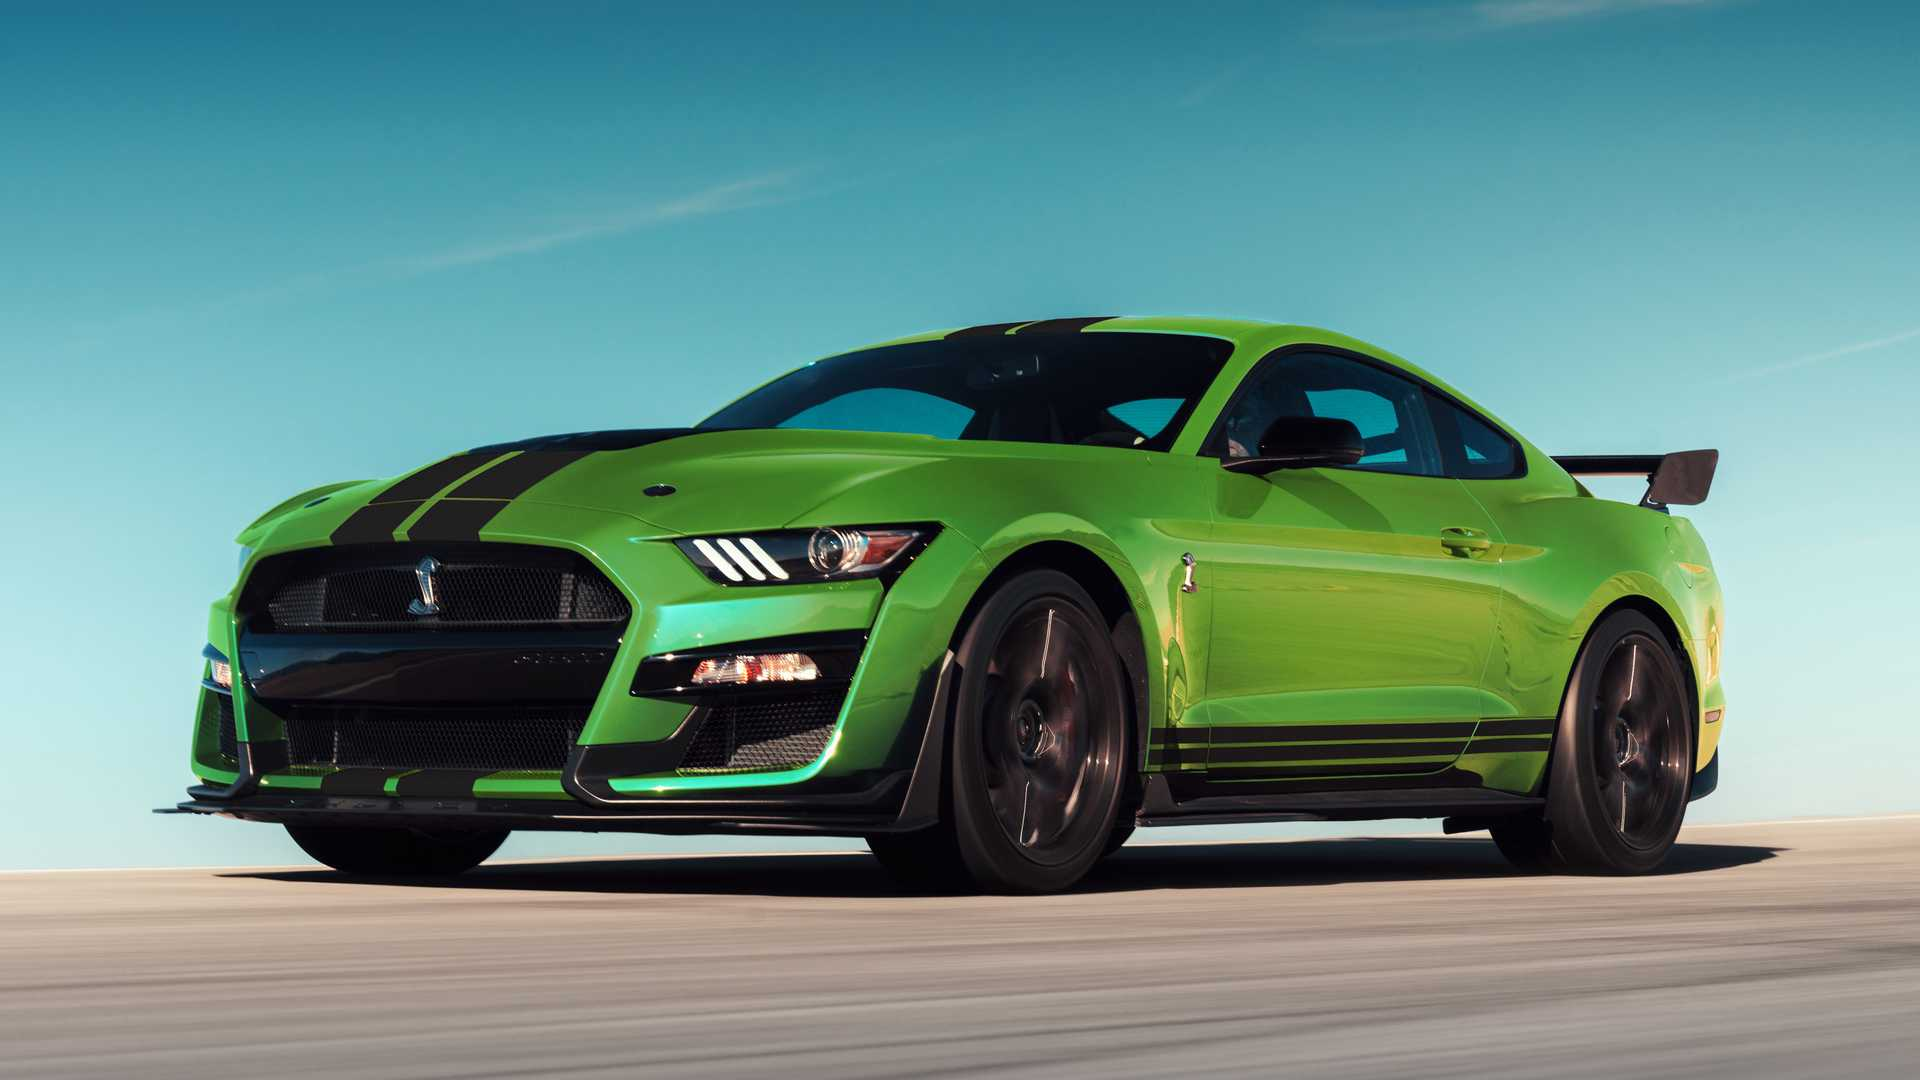 Ford mustang gets grabber lime paint in honor of st paddys day